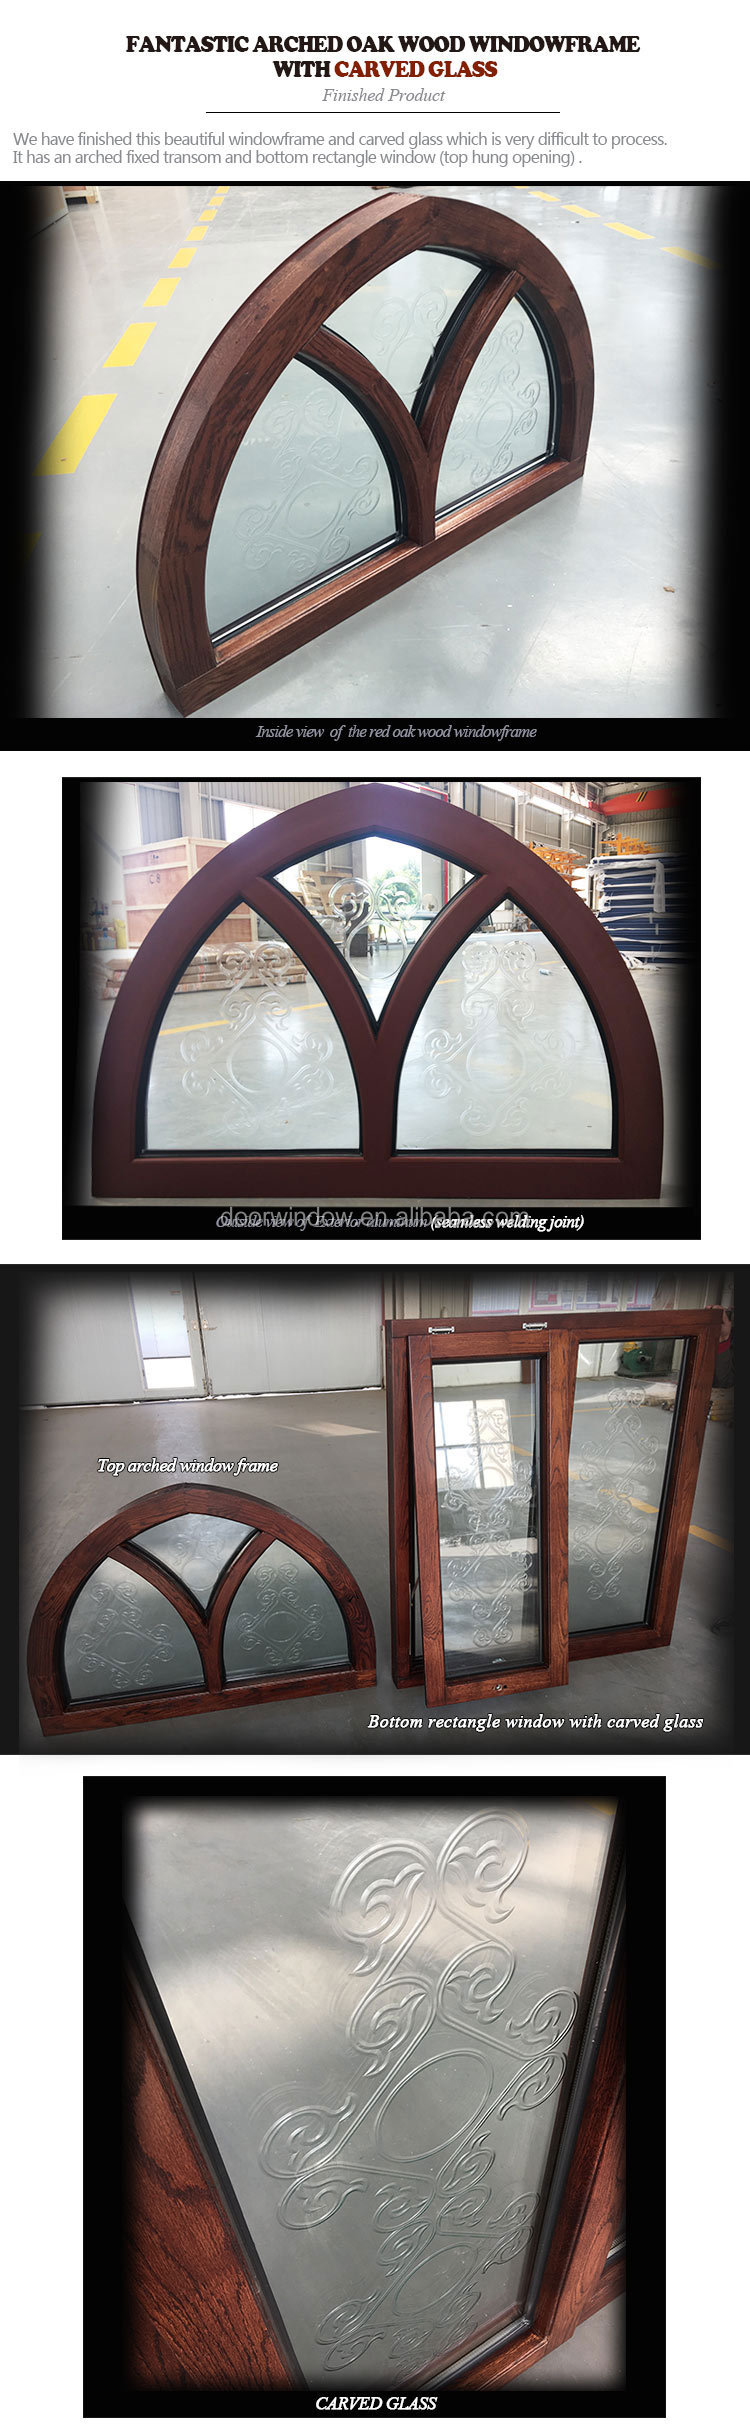 Glass window round garden arch top wood grille french casement windows